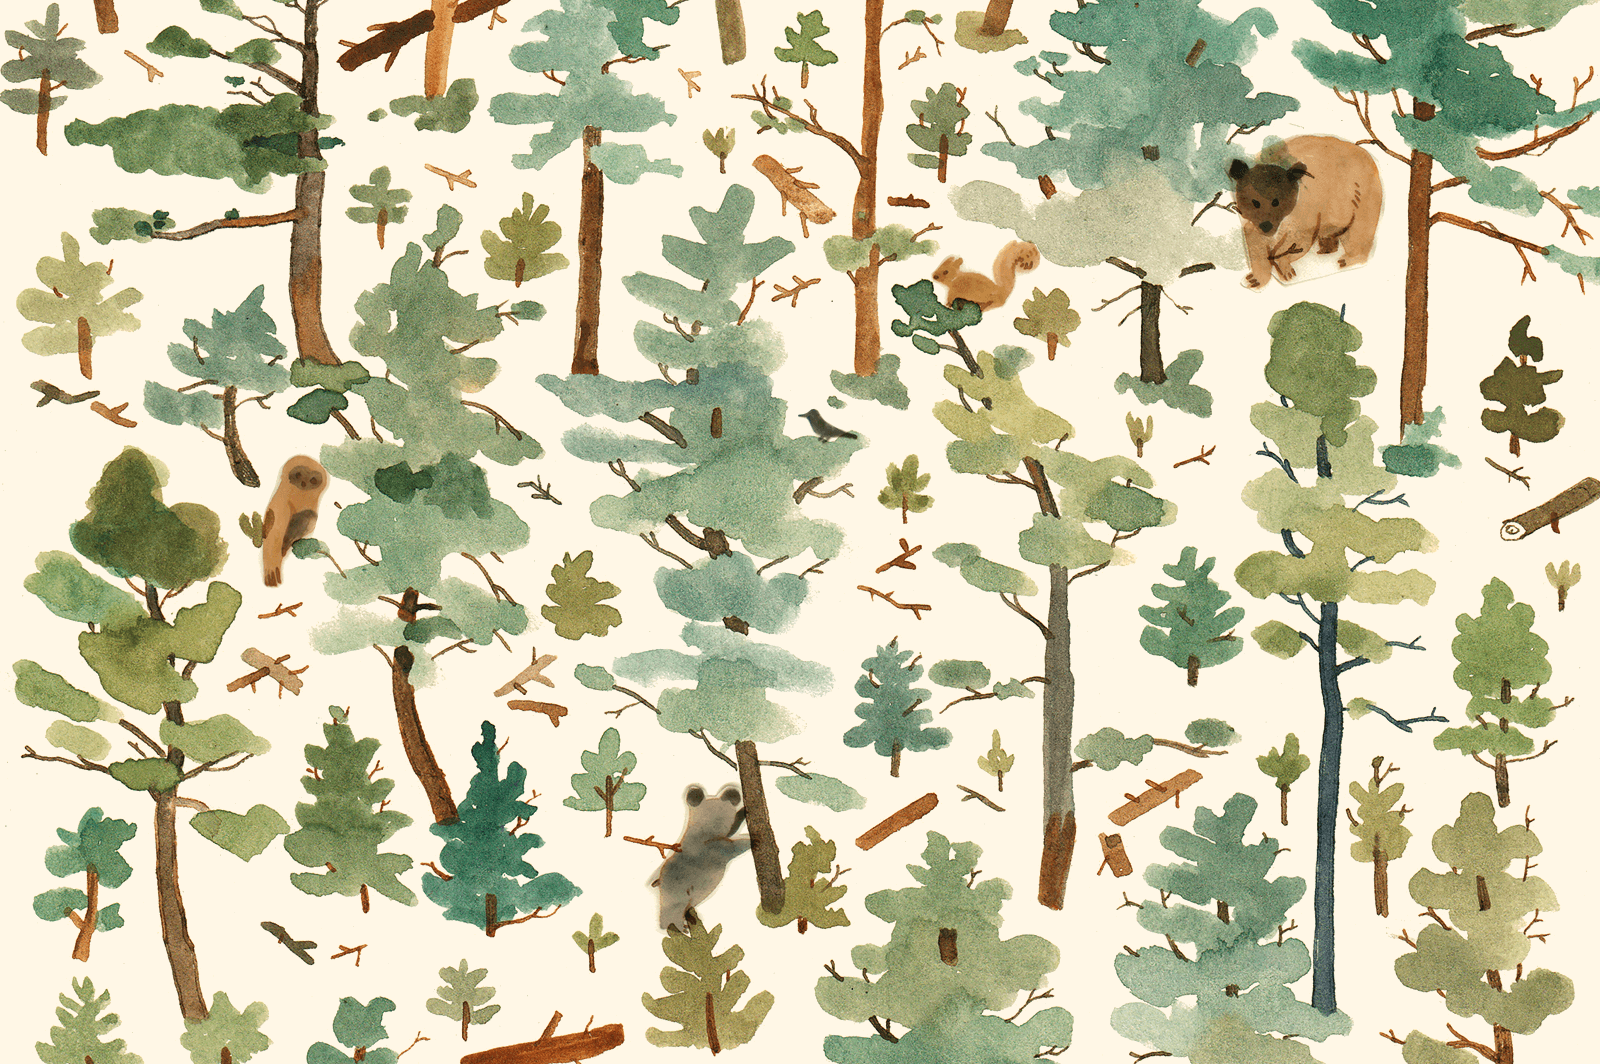 Watercolour illustration of a forest with bears